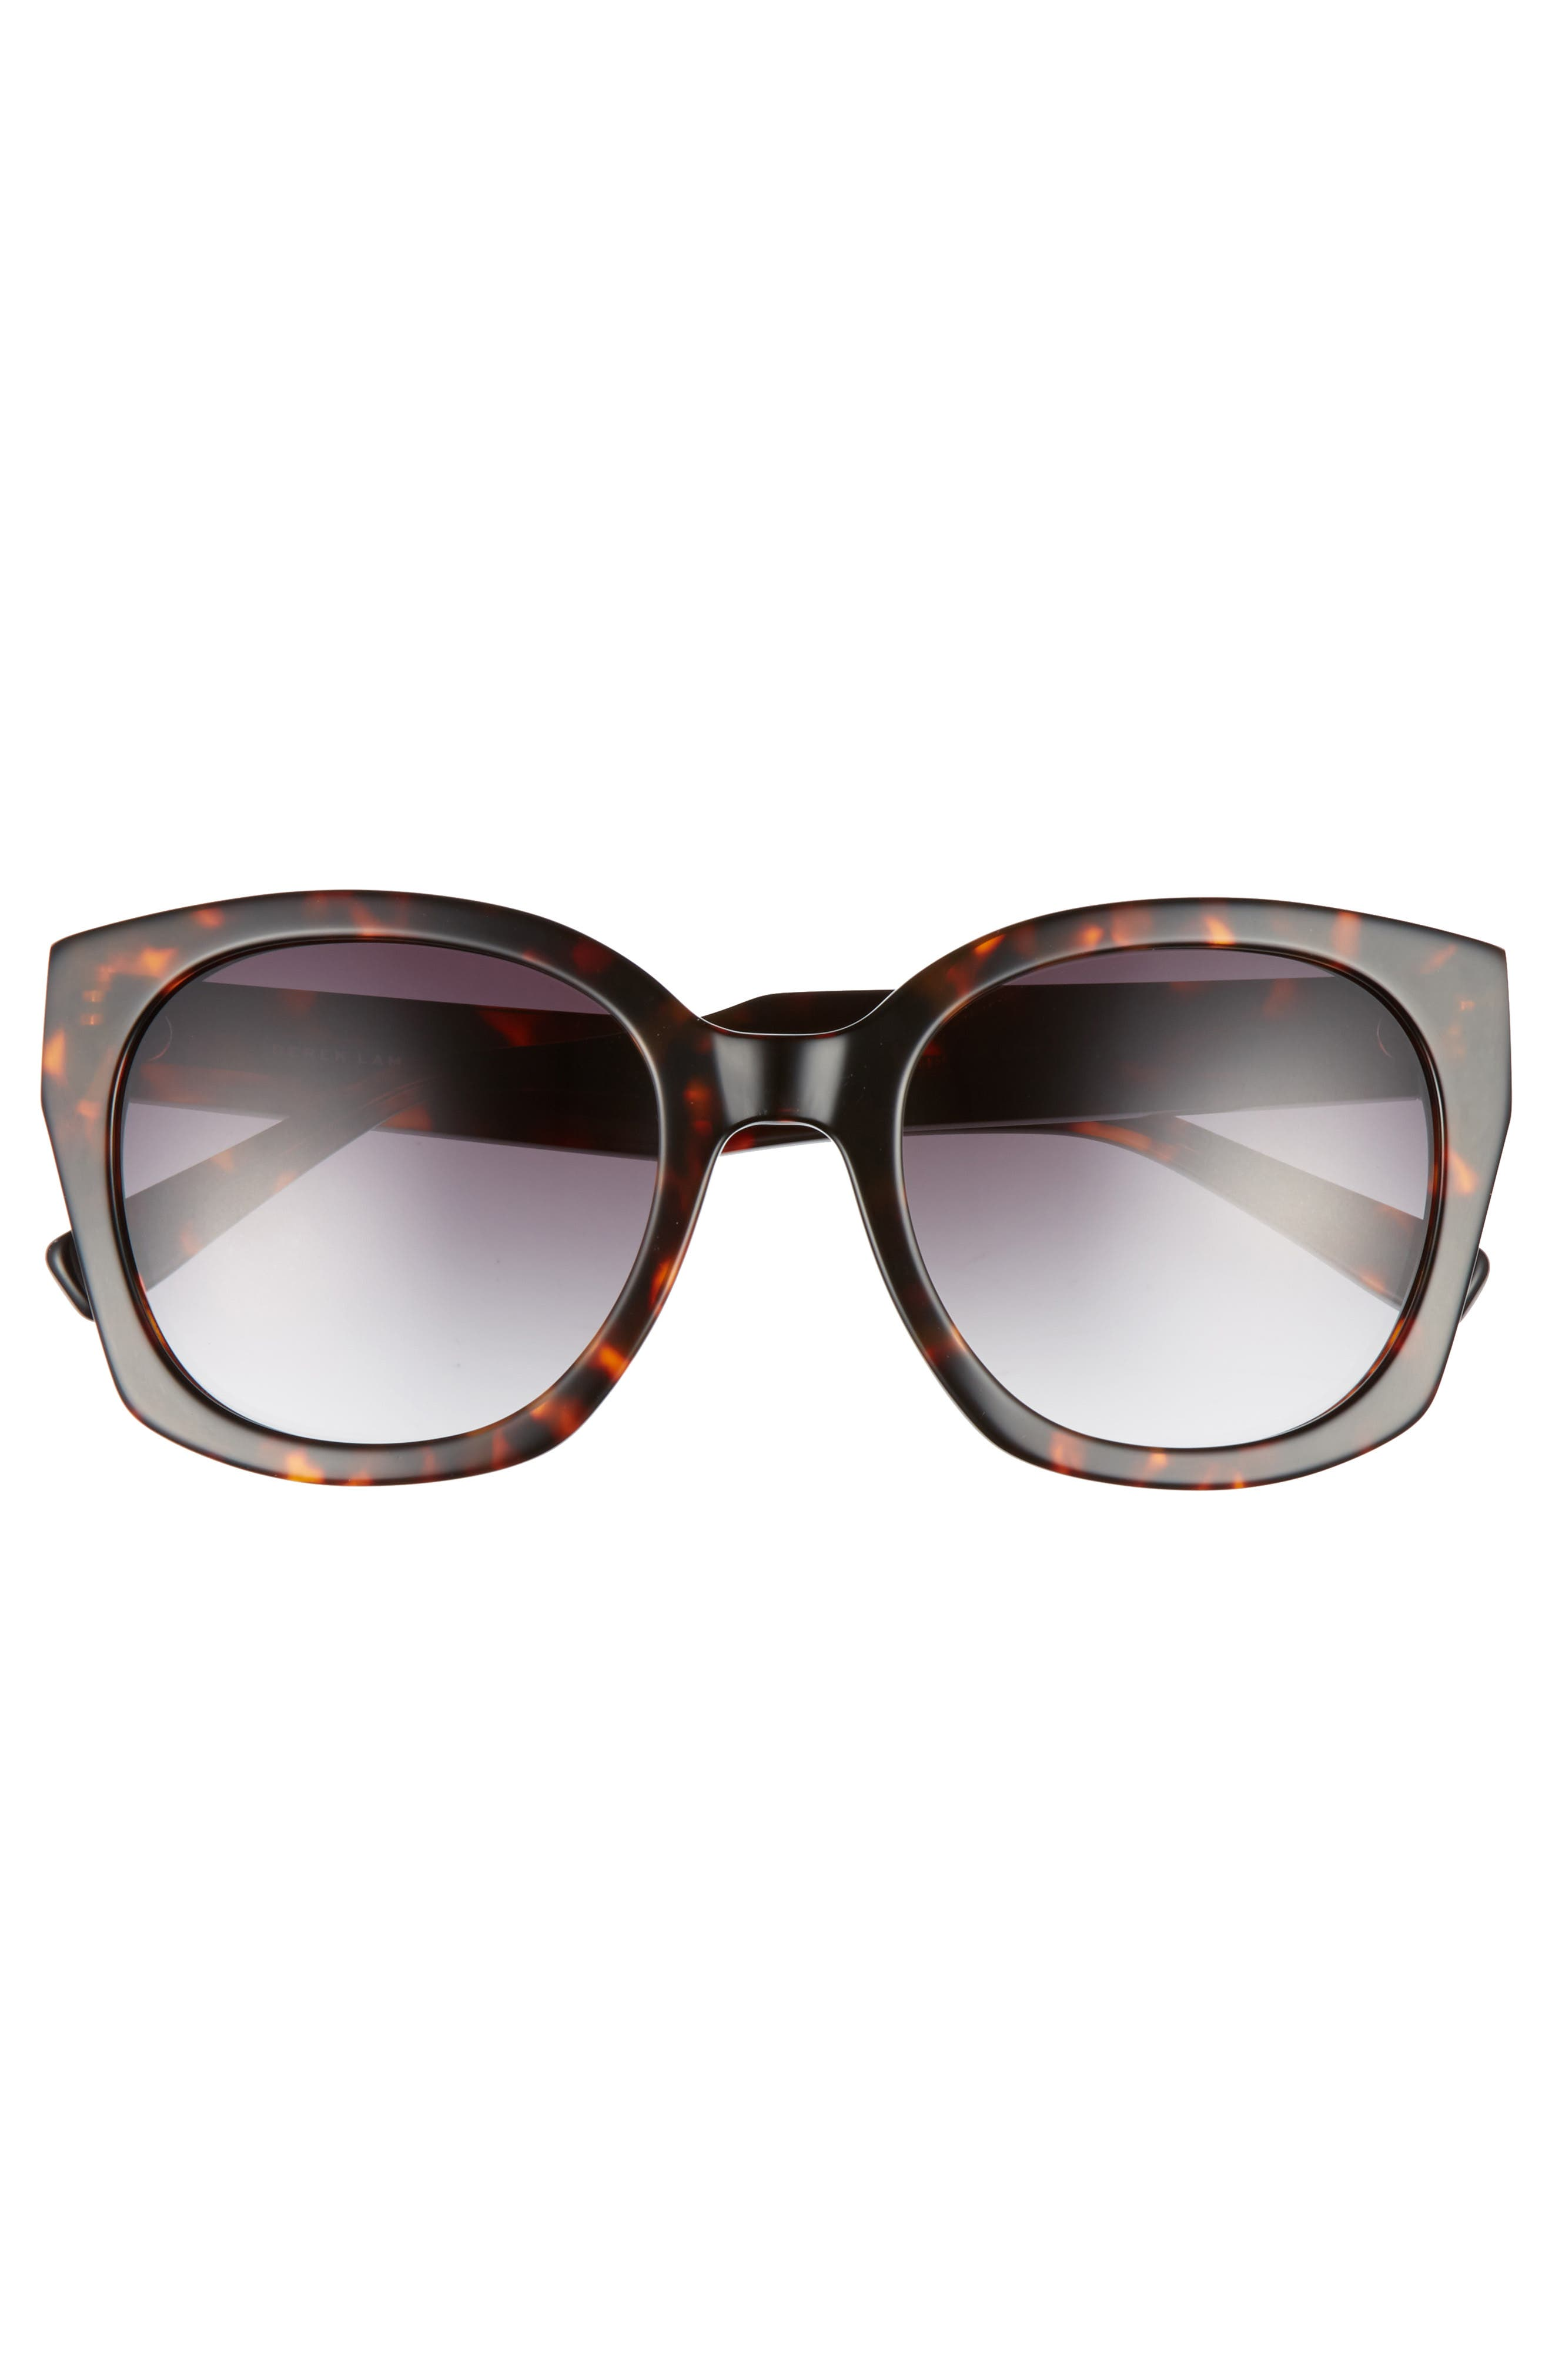 Sadie 54mm Sunglasses,                             Alternate thumbnail 3, color,                             HAVANA TORTOISE